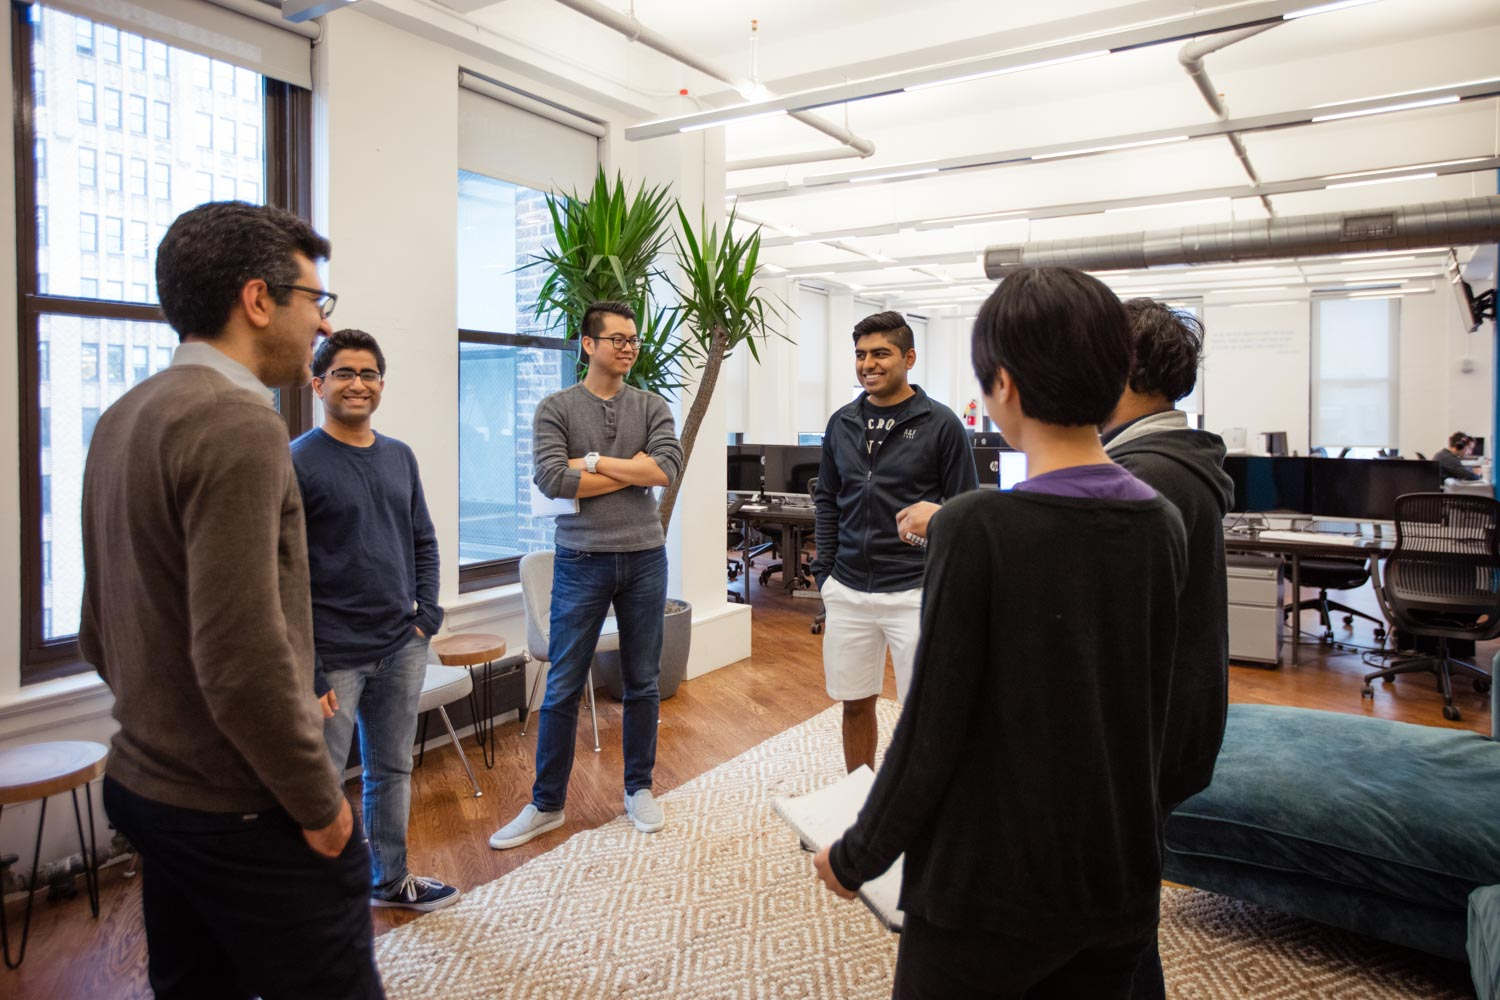 Office Lifestyle - Business & Corporate Lifestyle Photography NYC Tech Team Huddle Meeting